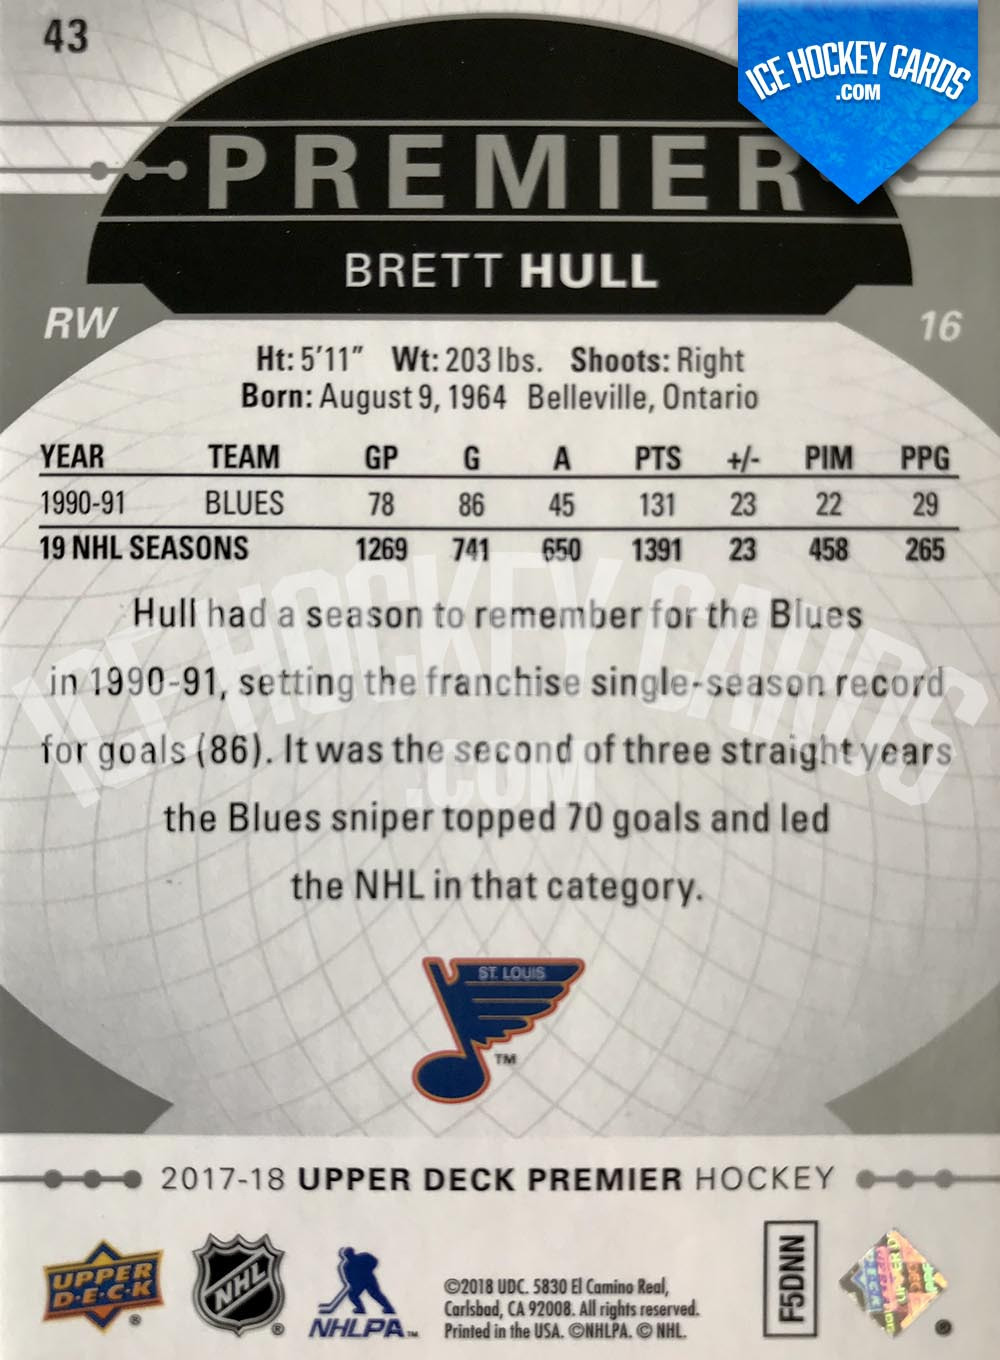 Upper Deck - Premier Hockey 2017-18 - Brett Hull Premier Legend Base Card back